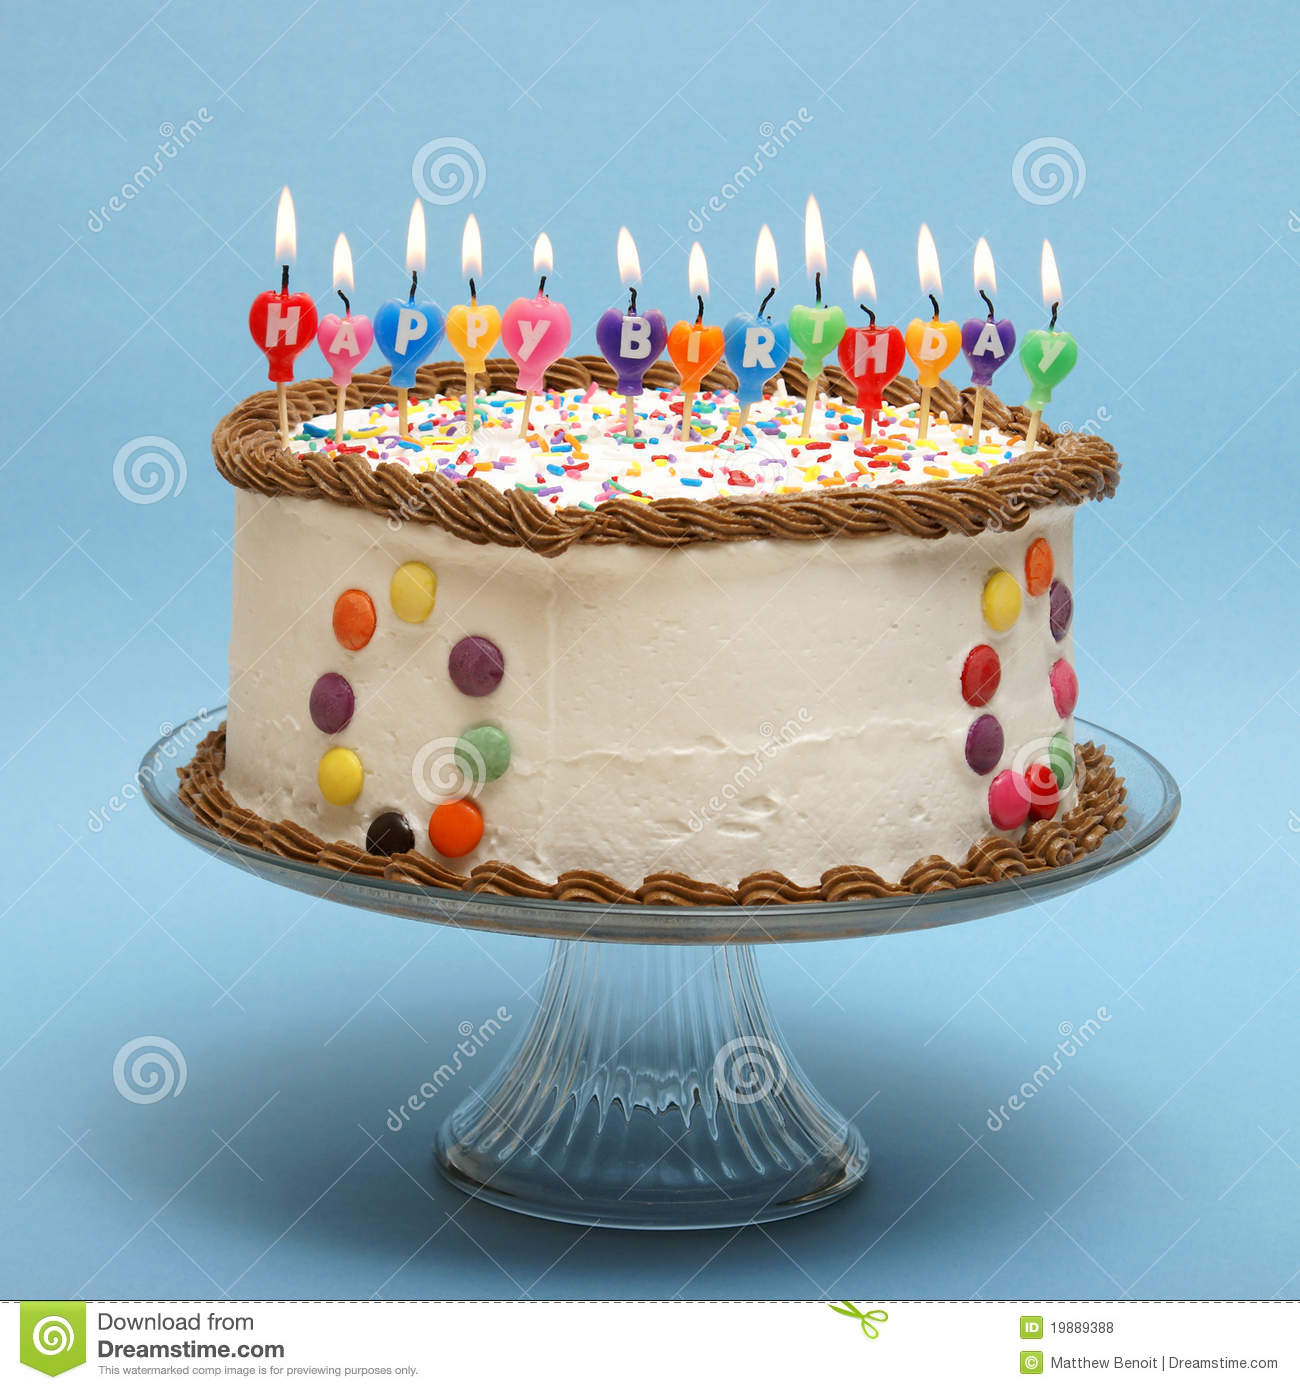 Happy Birthday Cake Stock Photo Image Of Colorful Flame 19889388